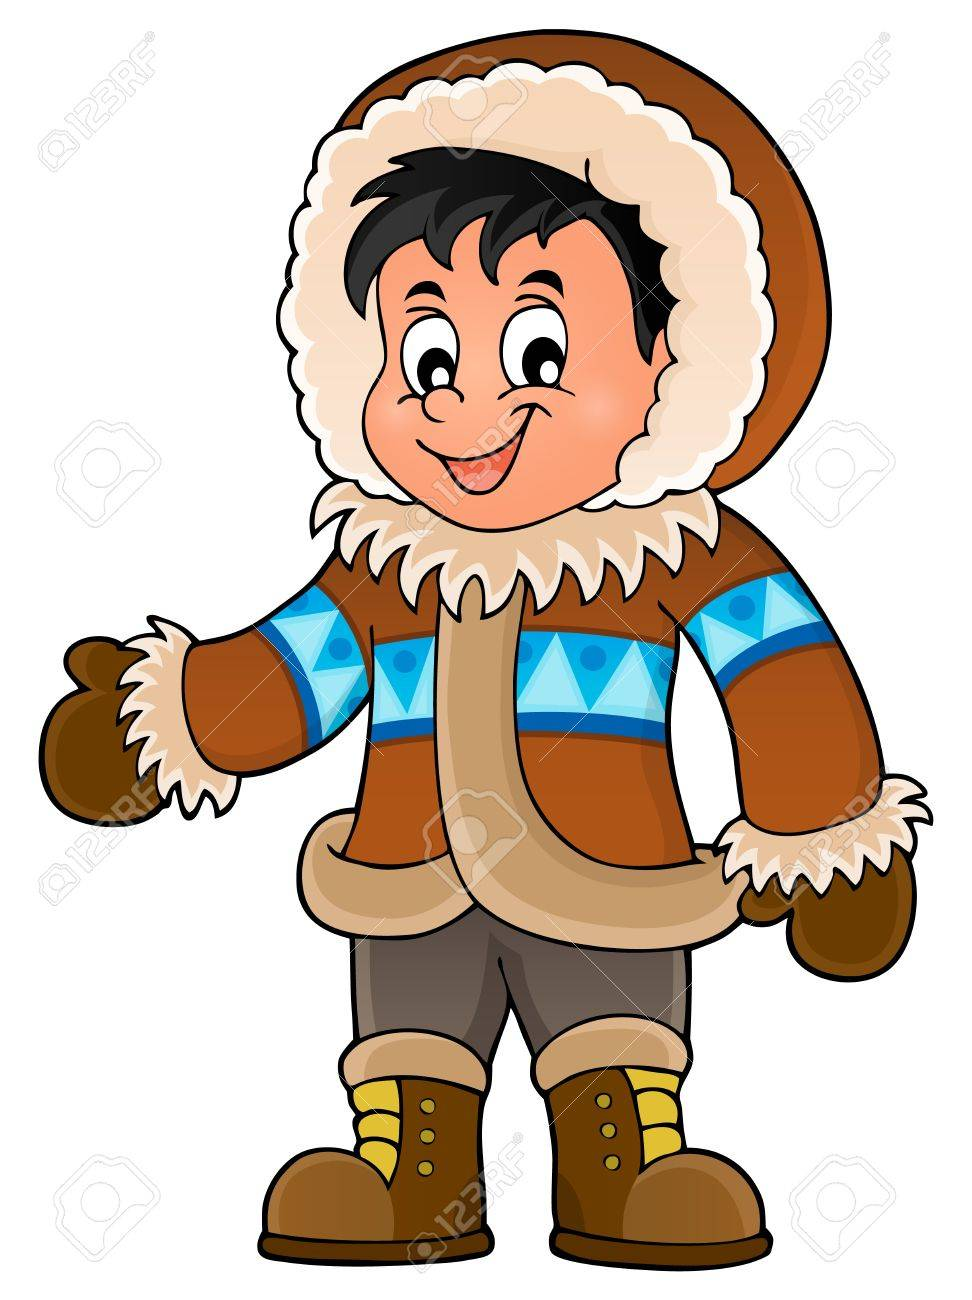 inuit clipart at getdrawings com free for personal use inuit rh getdrawings com eskimo cartoon free eskimo cartoon free